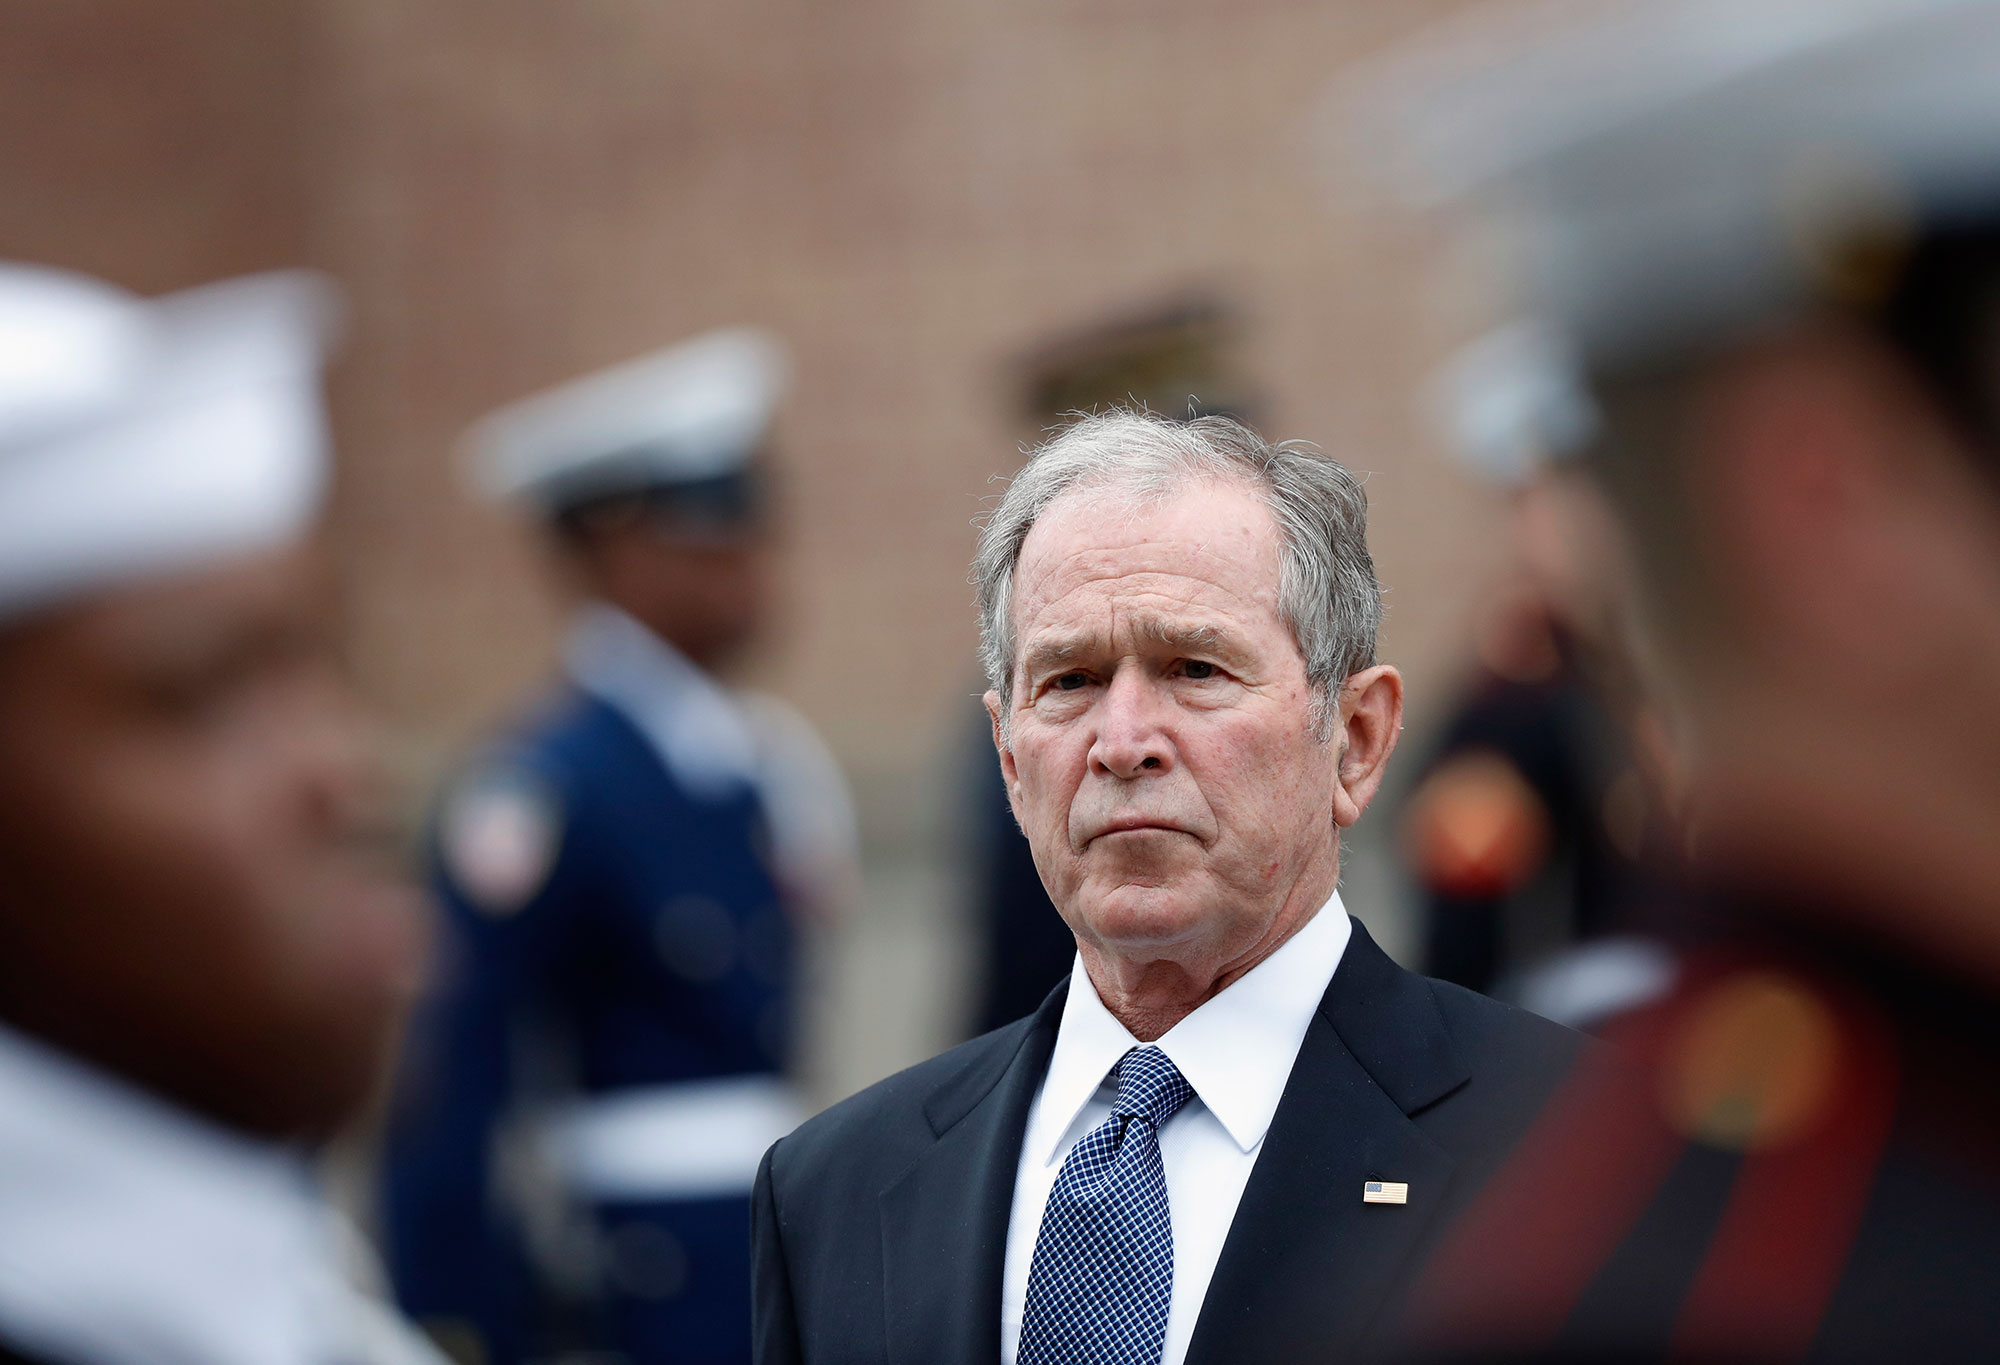 "<div class=""meta image-caption""><div class=""origin-logo origin-image none""><span>none</span></div><span class=""caption-text"">Former President George W. Bush leaves St. Martin's Episcopal Church in Houston after the funeral service for his father, former President George H.W. Bush. (Gerald Herbert/AP Photo)</span></div>"